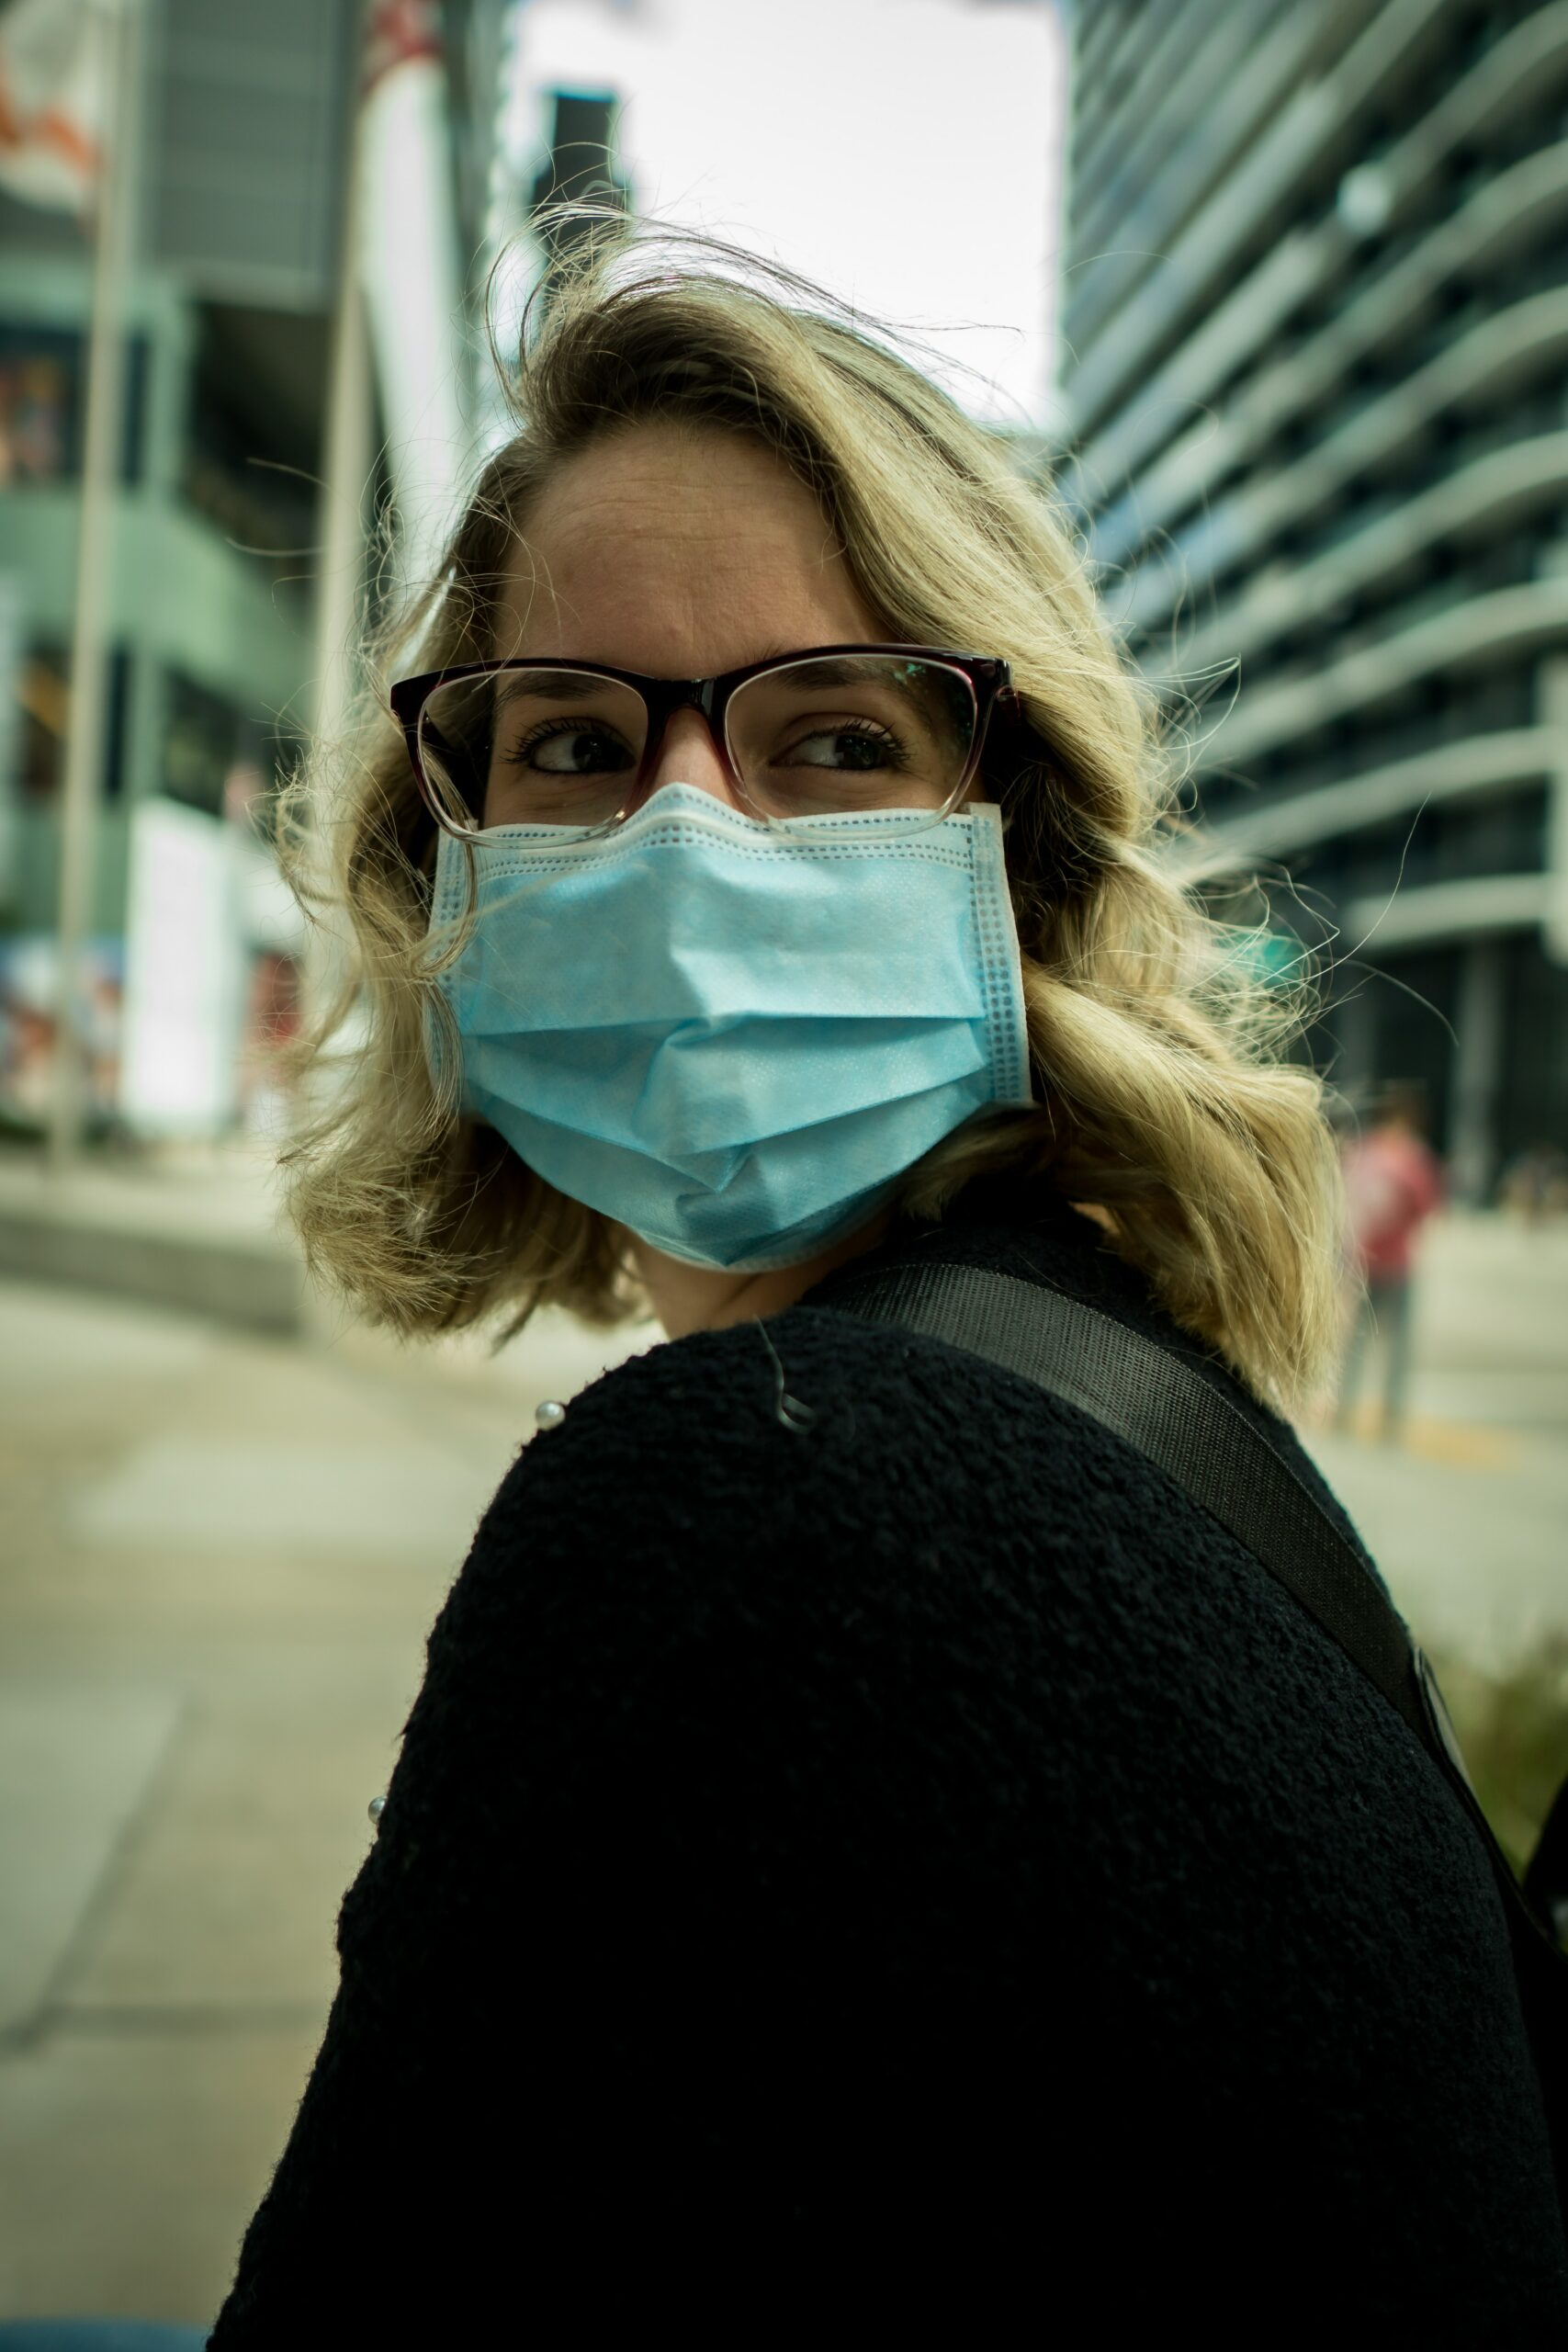 This image shows a woman wearing a mask outside in an urban area. This image represent the loneliness and COVID loss that occurred in 2020. Starting COVID counseling in Wilmington, NC can help. | 28405 | 28409